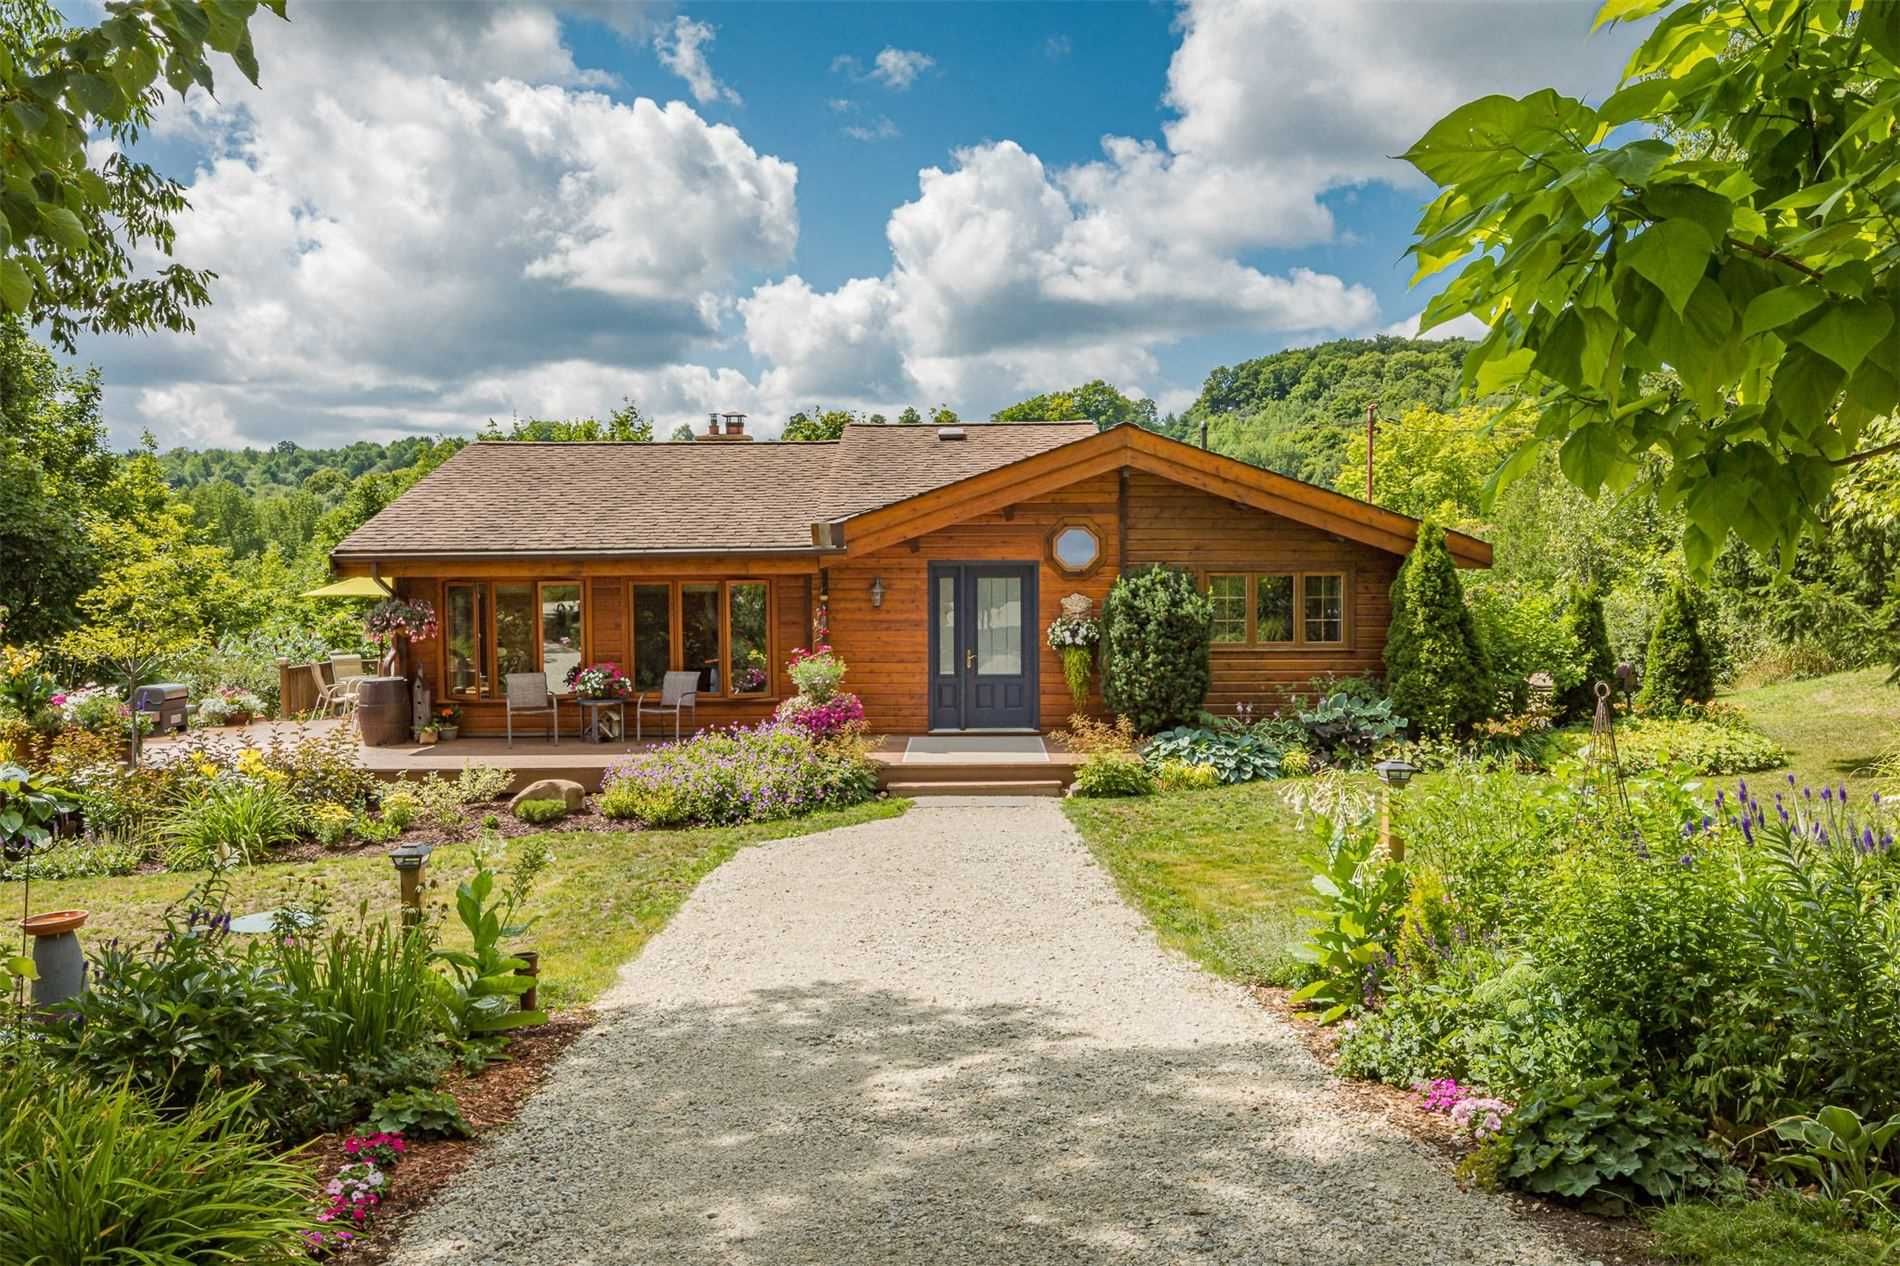 Beautiful Western Red Cedar Pan Abode Style Cabin Originally Built In 1960'S & Expanded In 80'S. The 50 Acre Property Located In Glen Huron On The Niagara Escarpment, Is Perched Above A Picturesque Ravine With A Stream And Many Hiking Trails Throughout. Main Floor Has 2 Beds, 3-Pc Bath, Sunroom, Vaulted Great Room W Living & Dining Featuring Lrg Windows & Field-Stone Fp. Lower Level Has 1 Bed, 2-Pc Bath & Lrge Rec Room. Beautiful Gardens & 2 Car Garage.